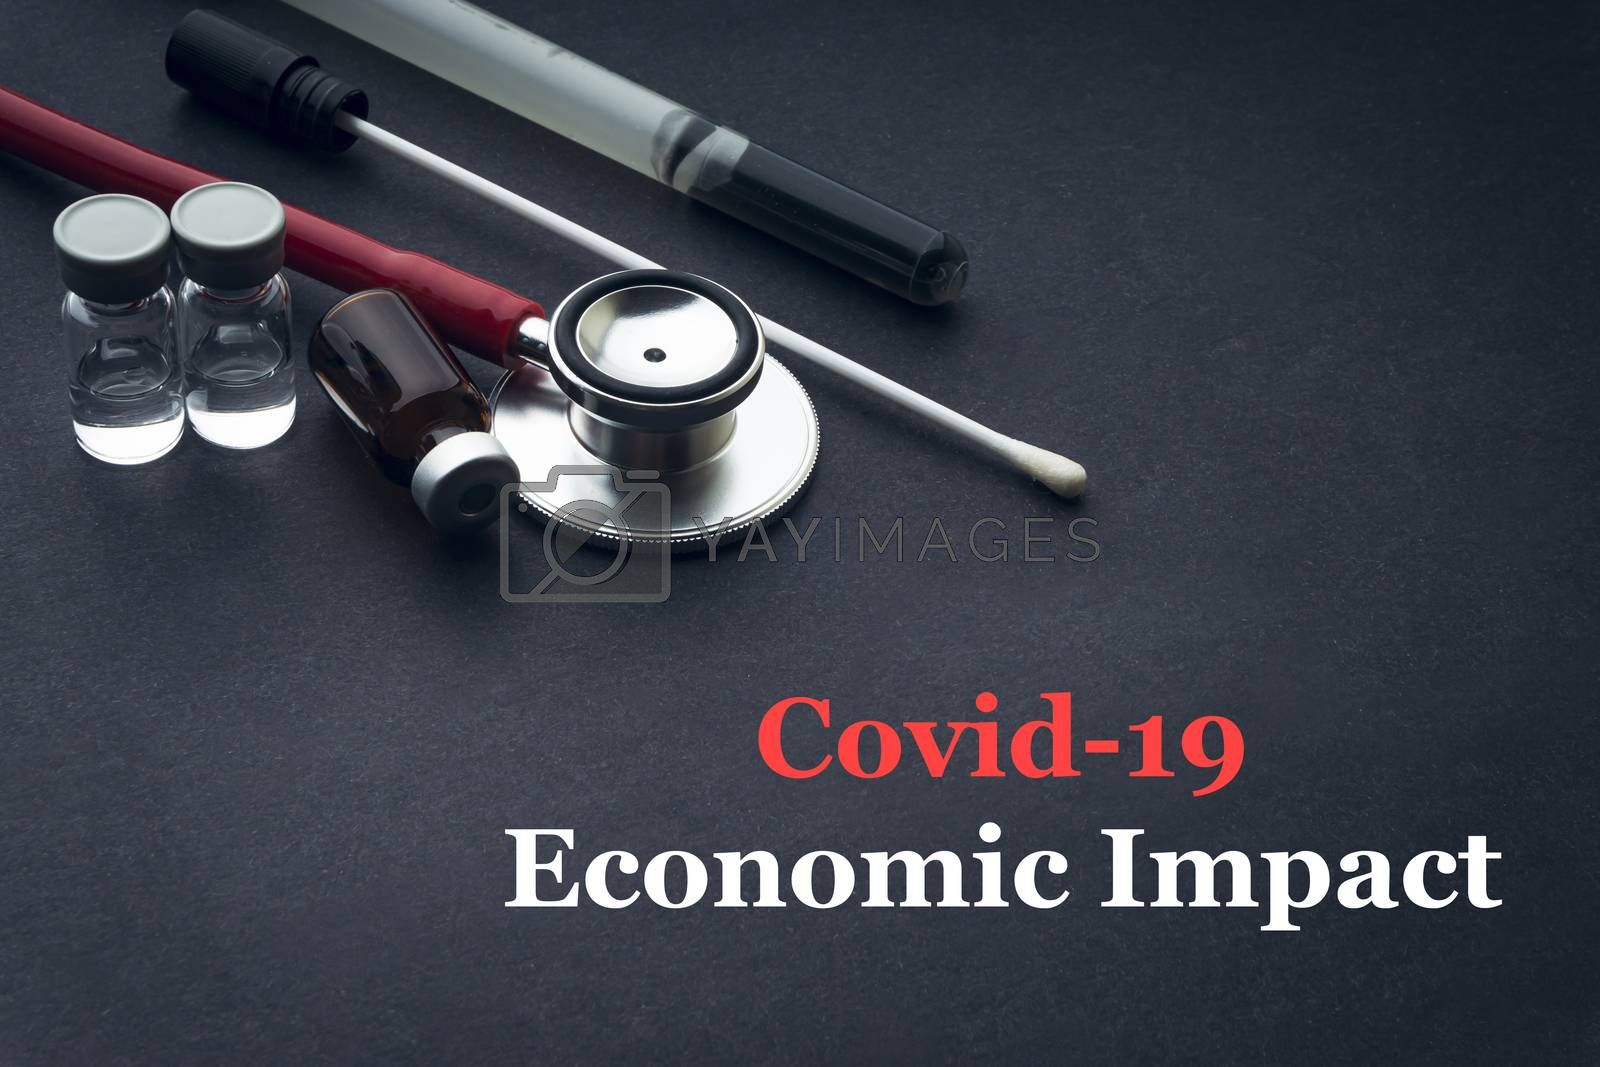 COVID-19 or CORONAVIRUS ECONOMIC IMPACT text with stethoscope, medical swab and vial on black background. Covid-19 or Coronavirus concept.